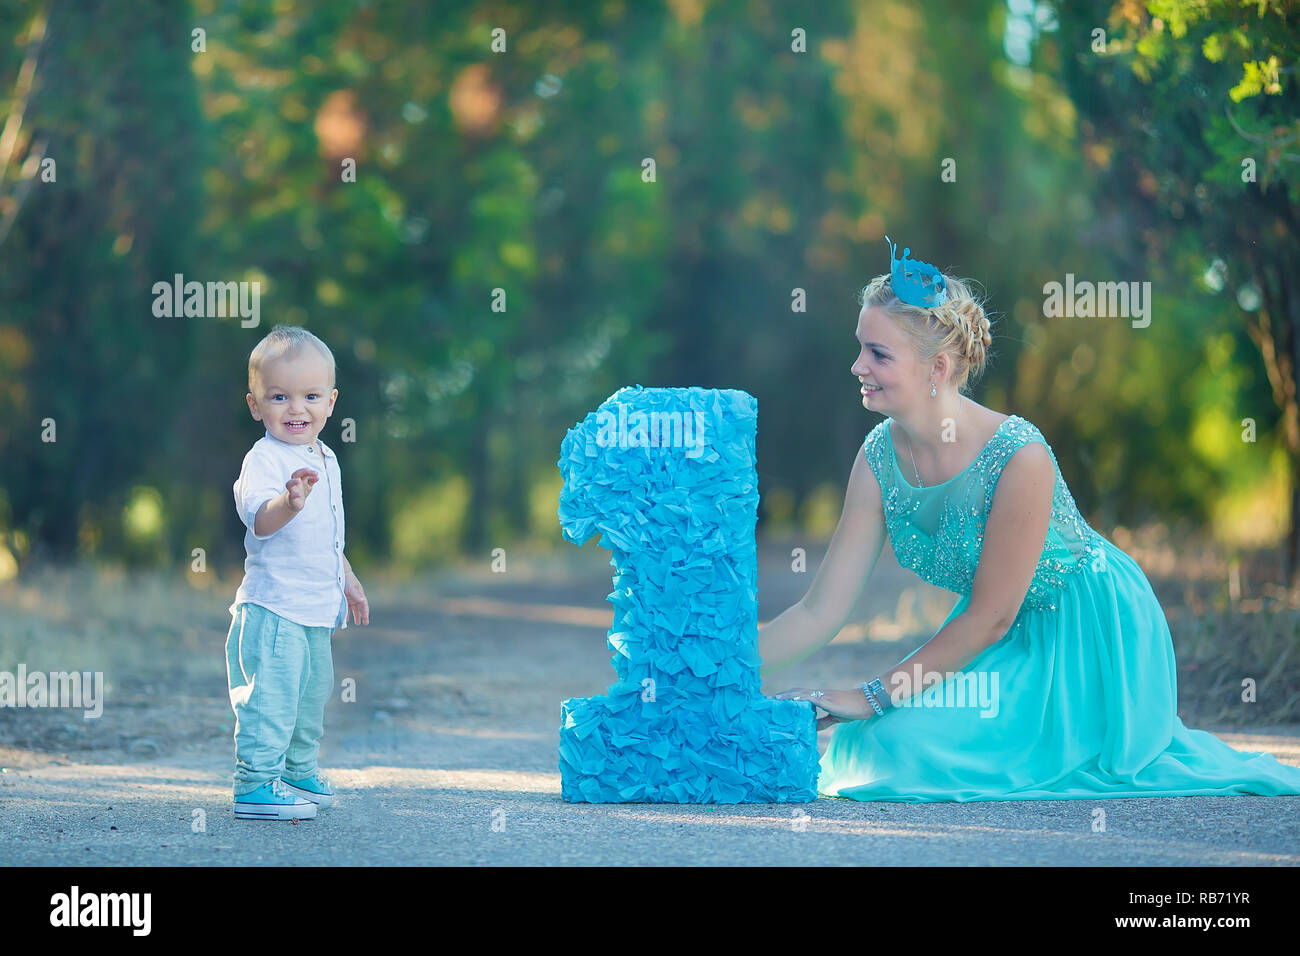 Beautifull Mother Lady Mom In Stylish Blue Dress Together With Her Son And Number One Birthday Park